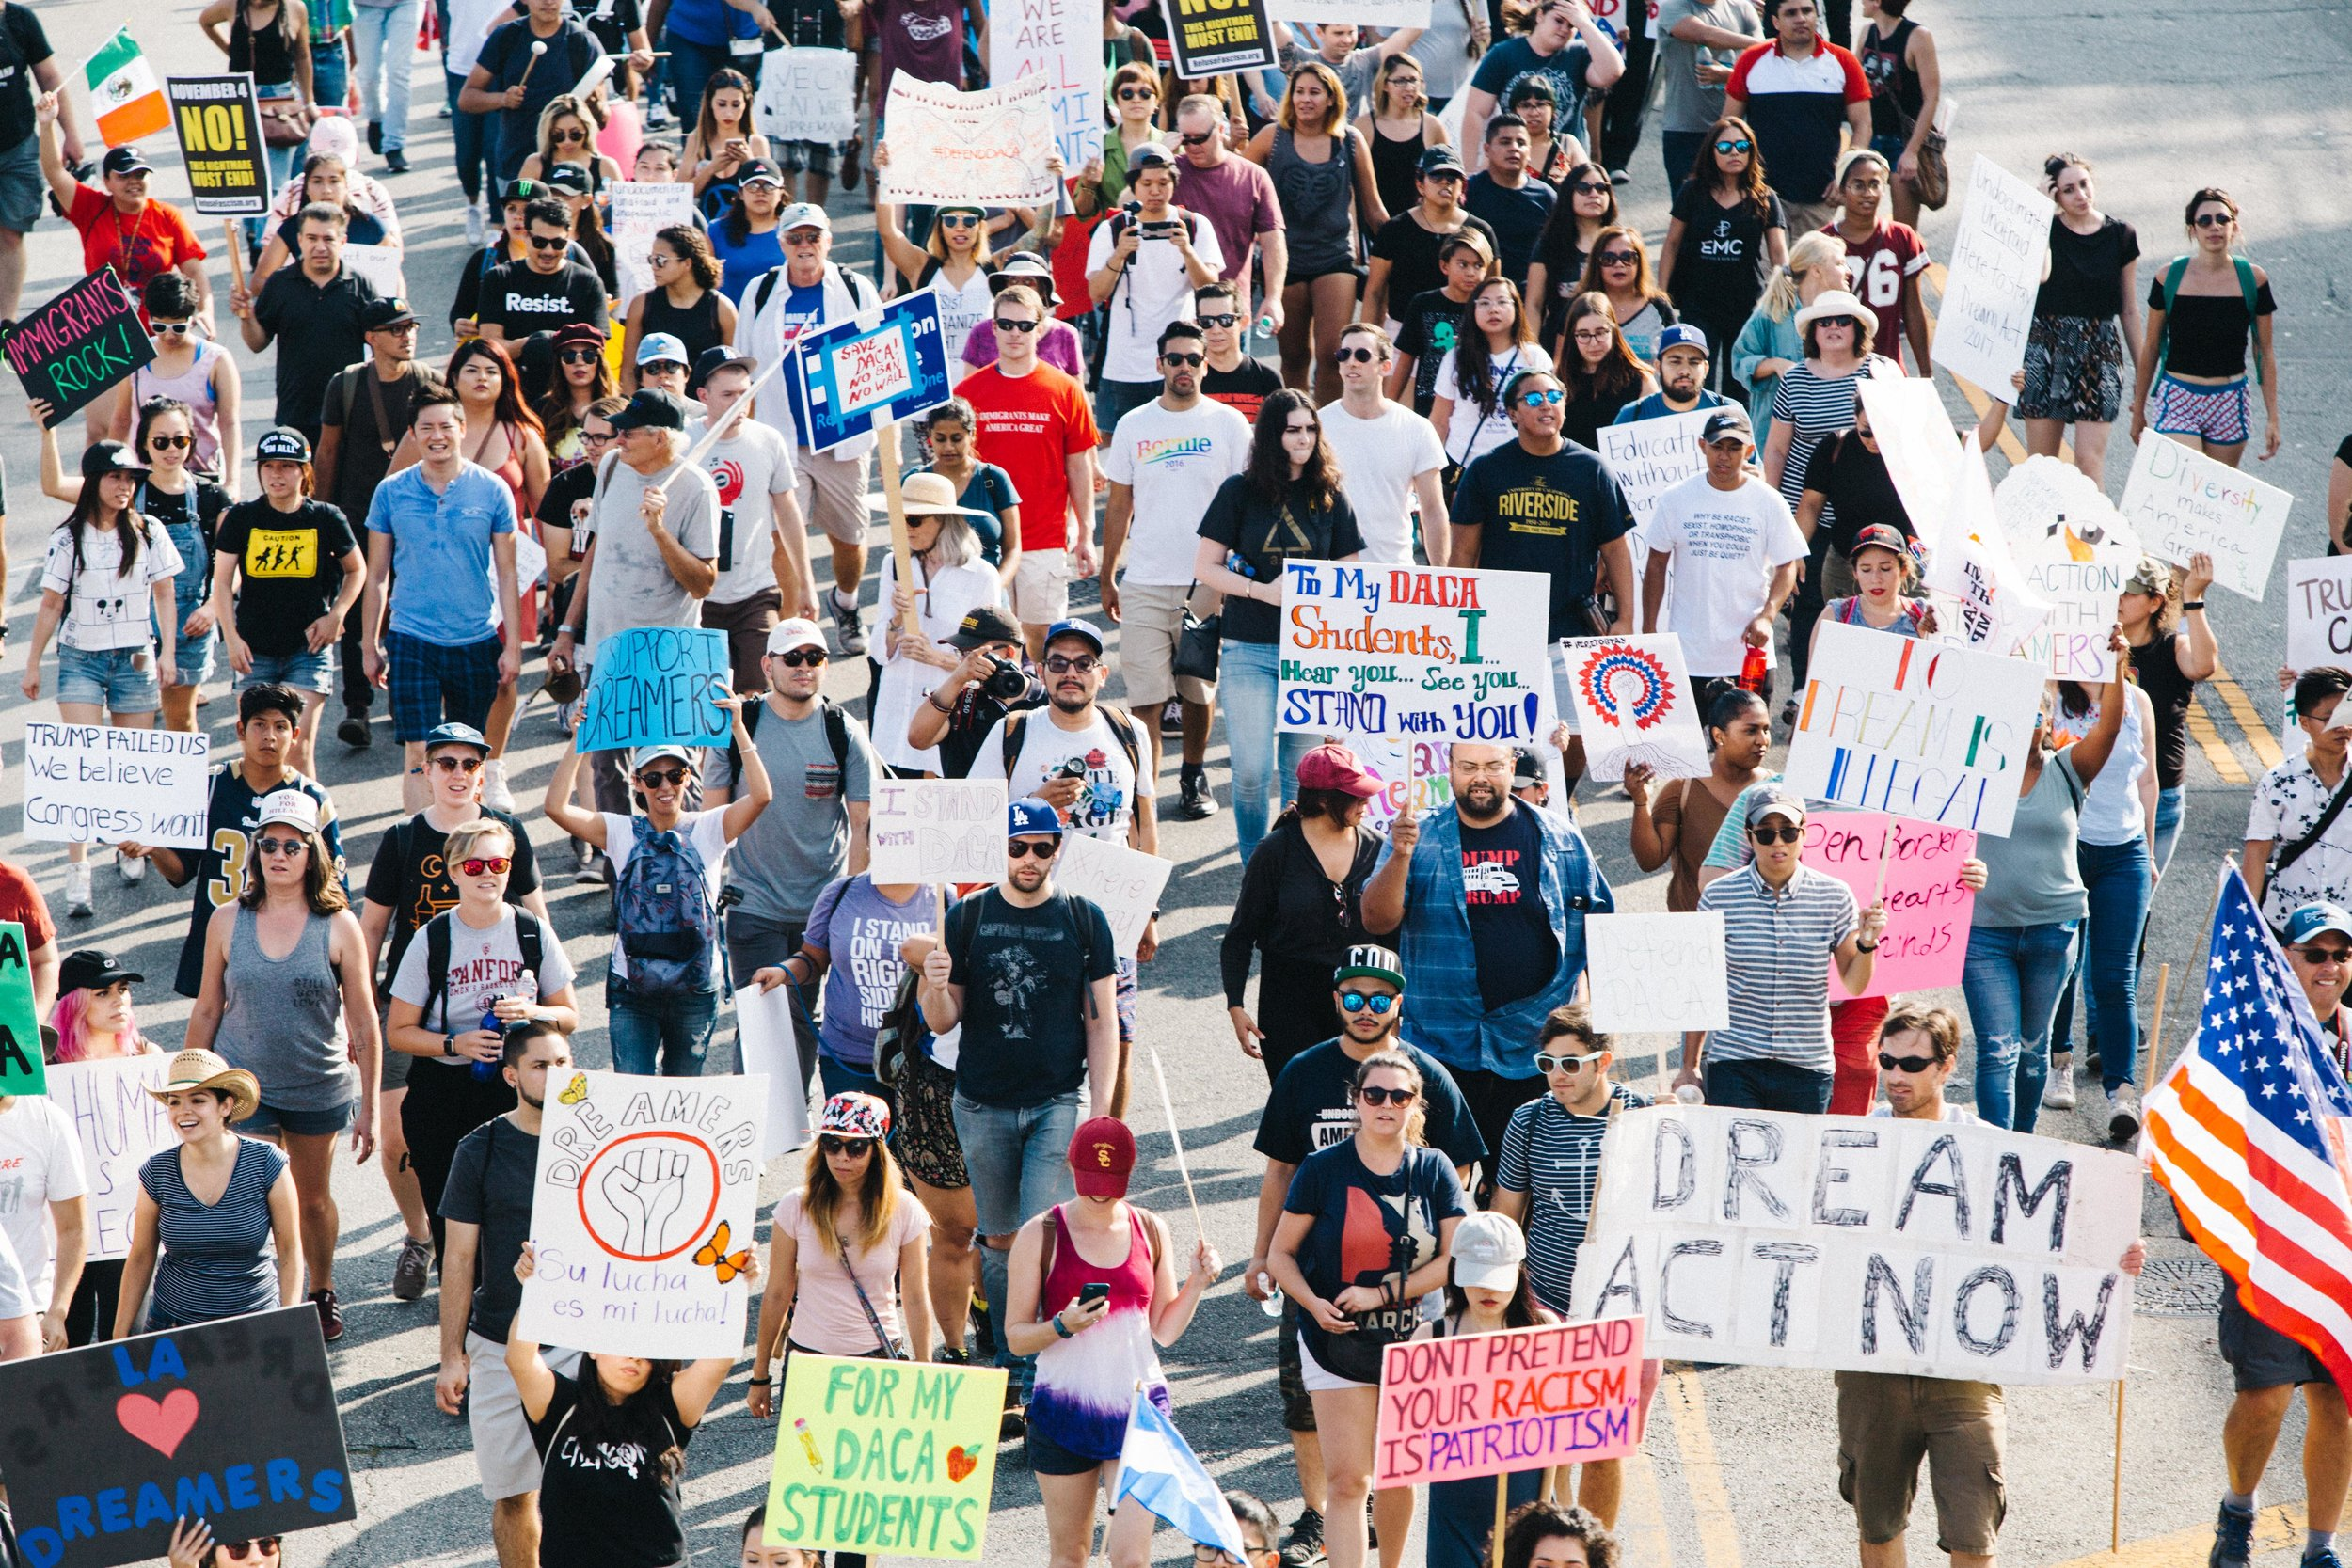 People march in the streets of Los Angeles calling for the end of surveillance, deportations and criminalization of undocumented people.  Photo  by Molly Adams